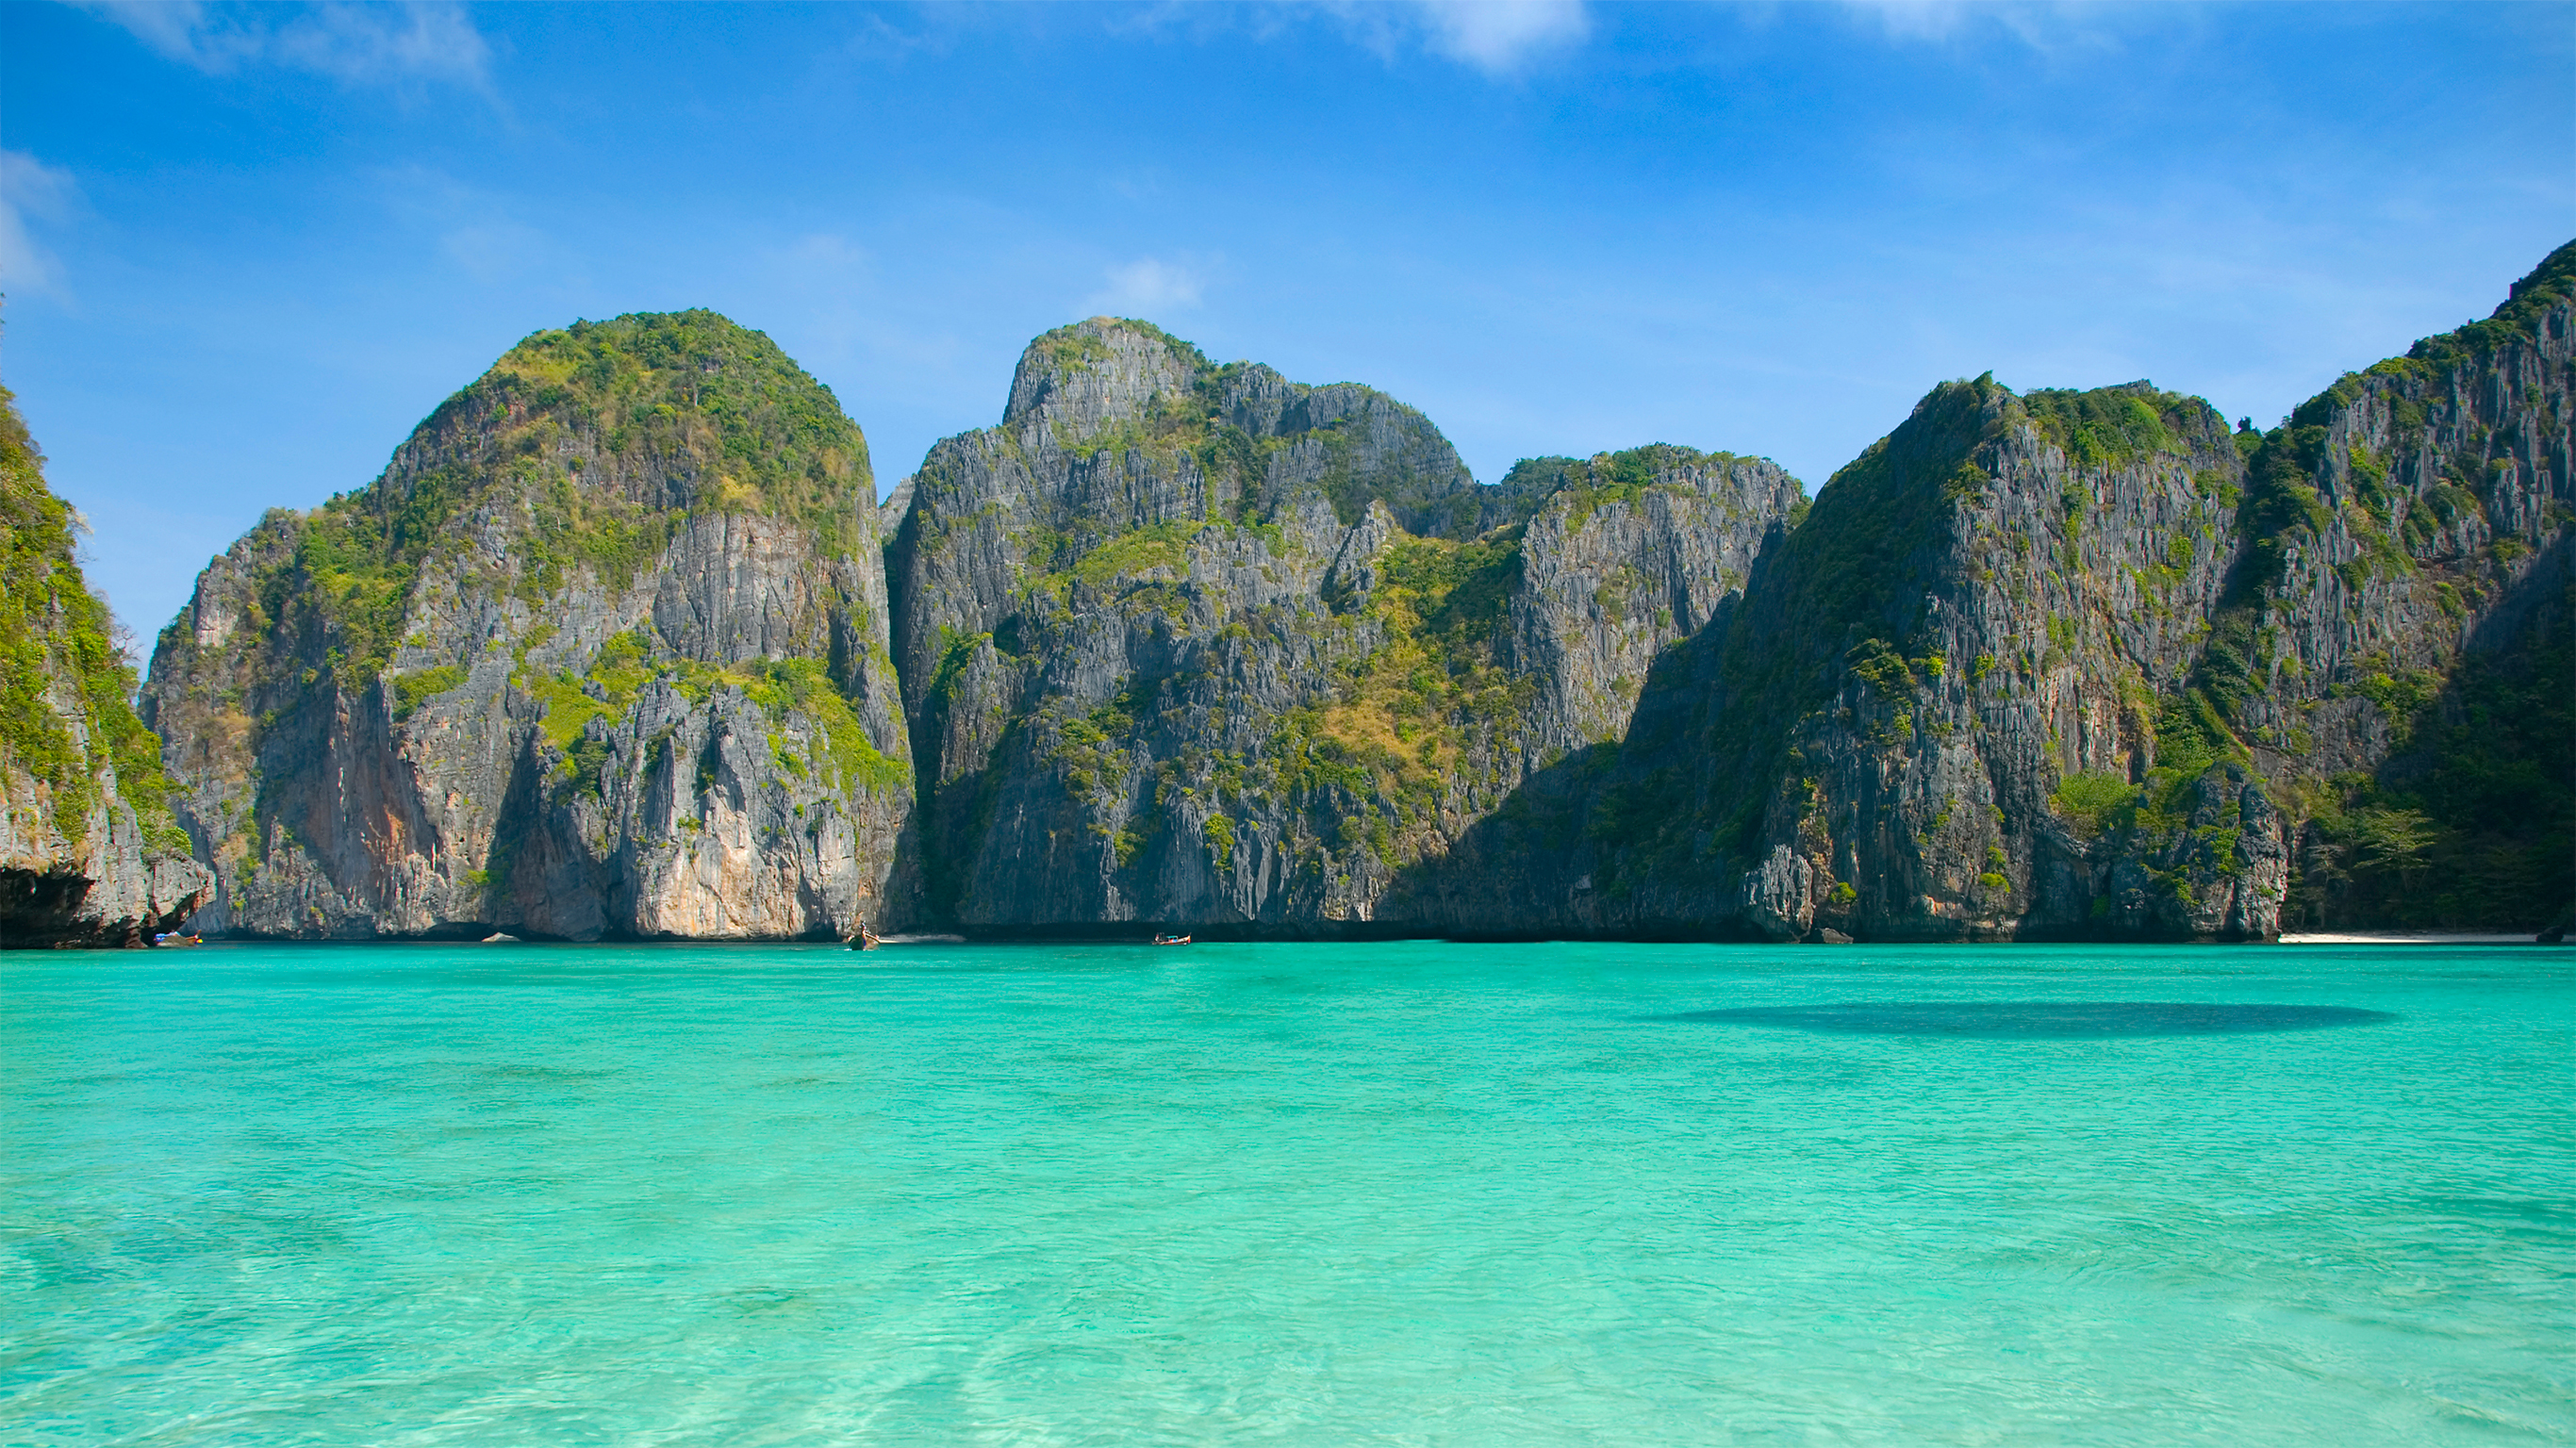 thailand's top 6 islands - g adventures